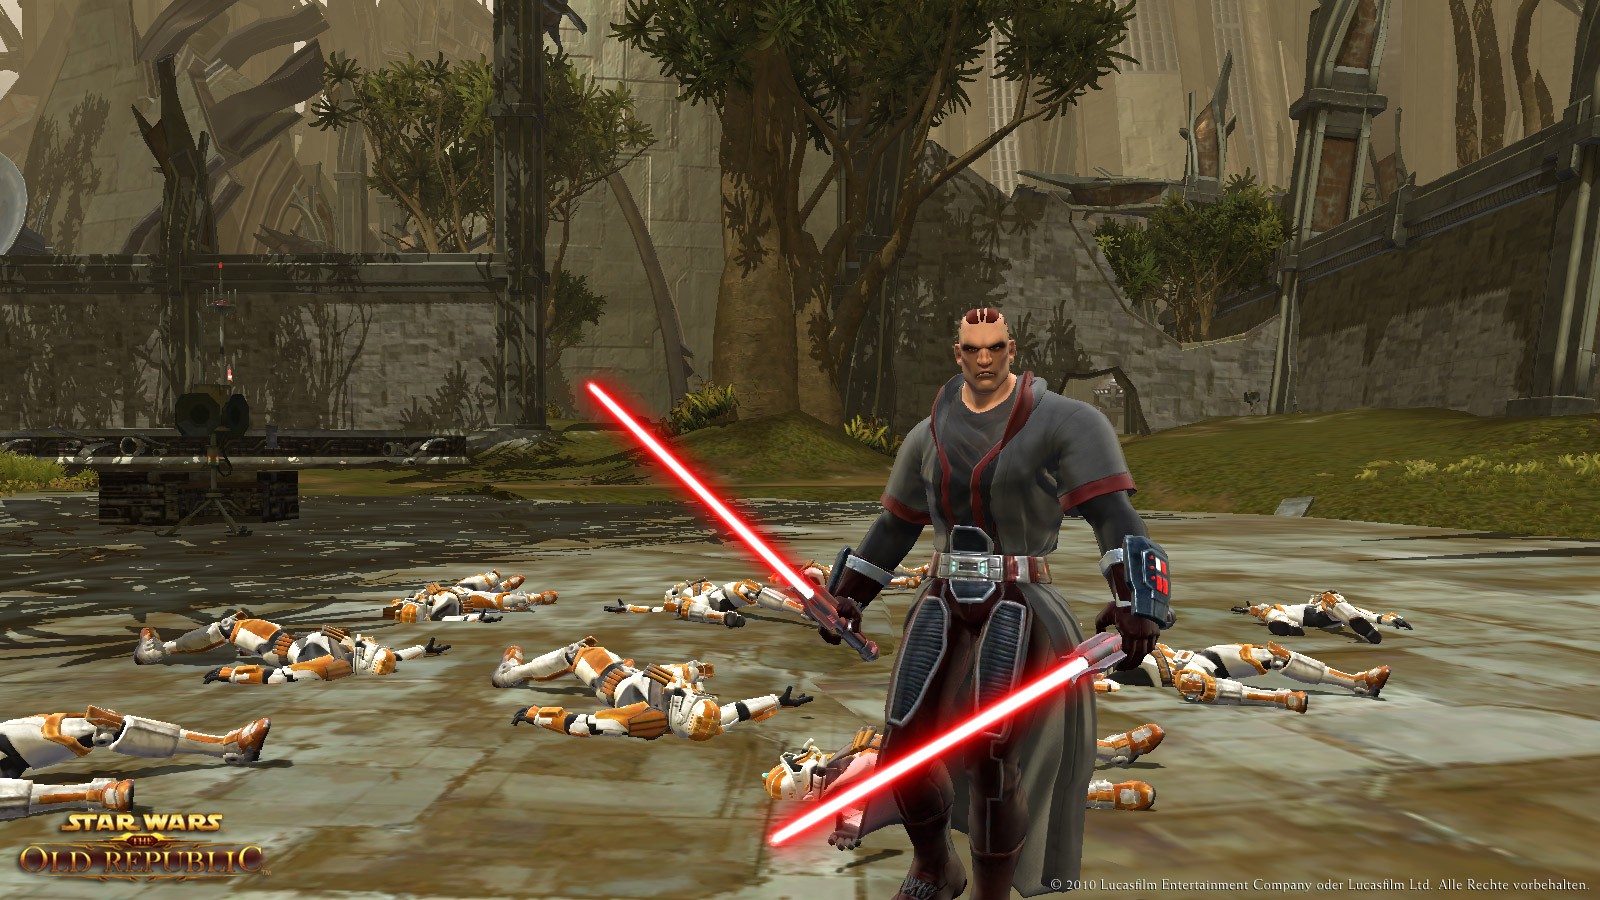 http://cdn-www.swtor.com//sites/all/files/de/classes/sith-warrior/images/advclass/ss1_1600x900.jpg